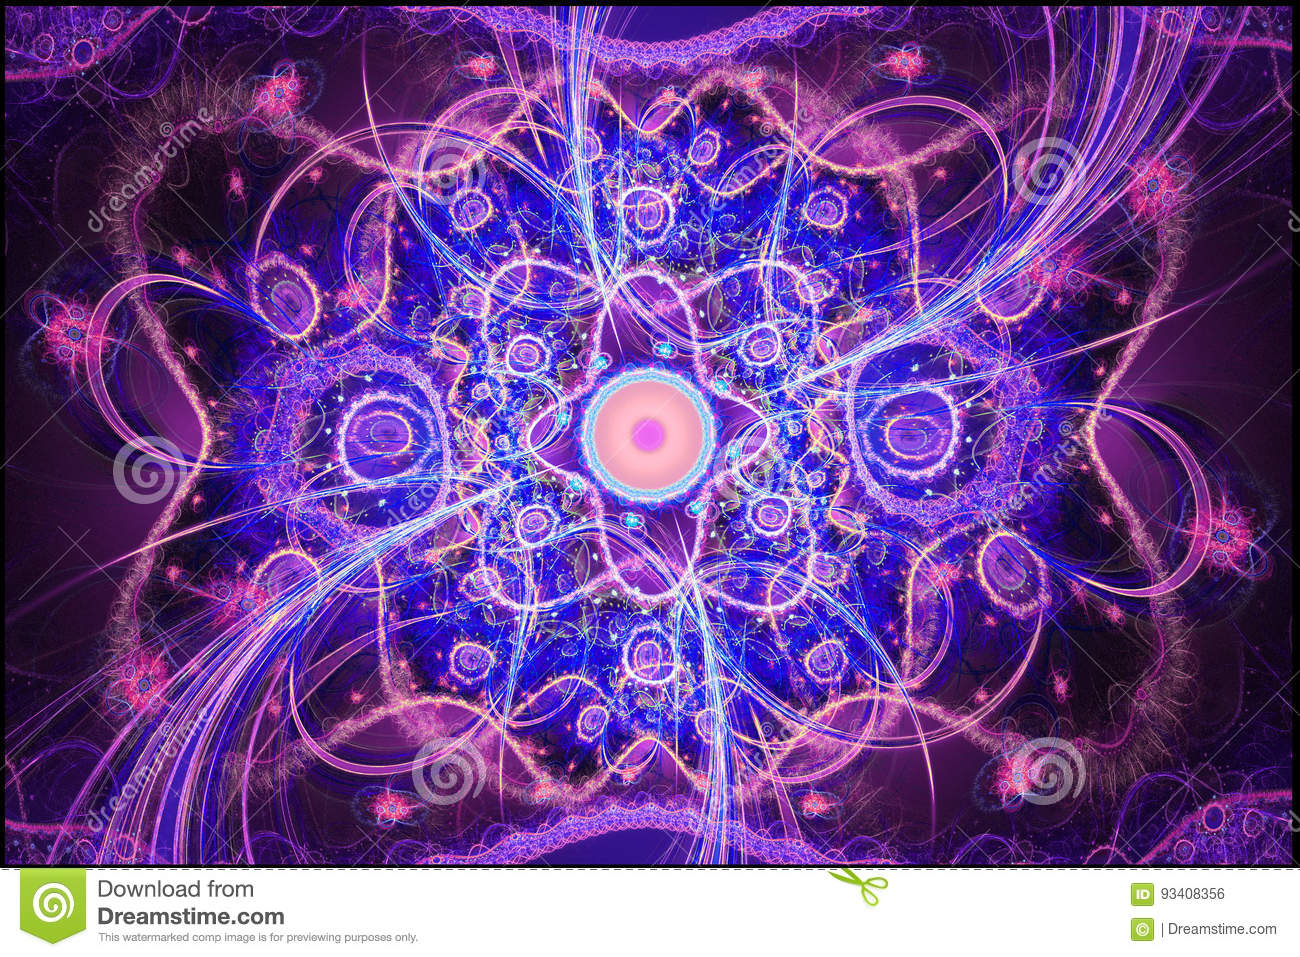 Download Geometric Patterns Can Illustrate Daydreaming Imagination Psychedelic Space Dreams And Magic Universe. Stock Photo - Image of artsy, bright: 93408356